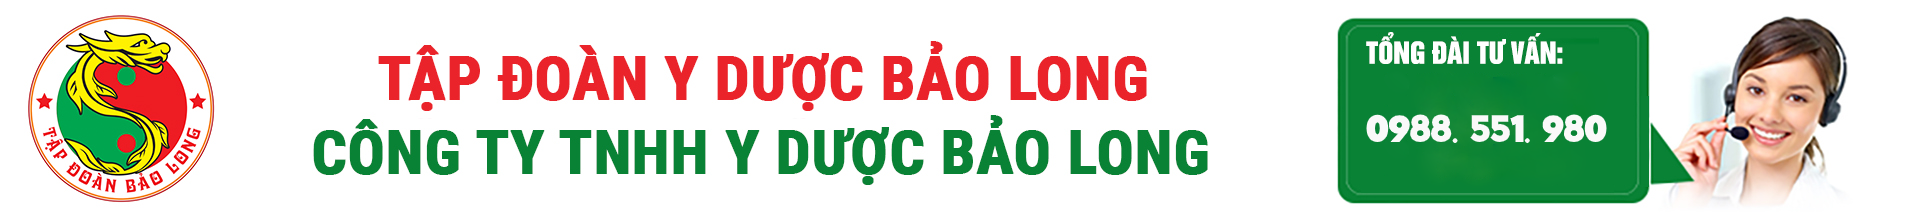 CÔNG TY TNHH Y DƯỢC BẢO LONG